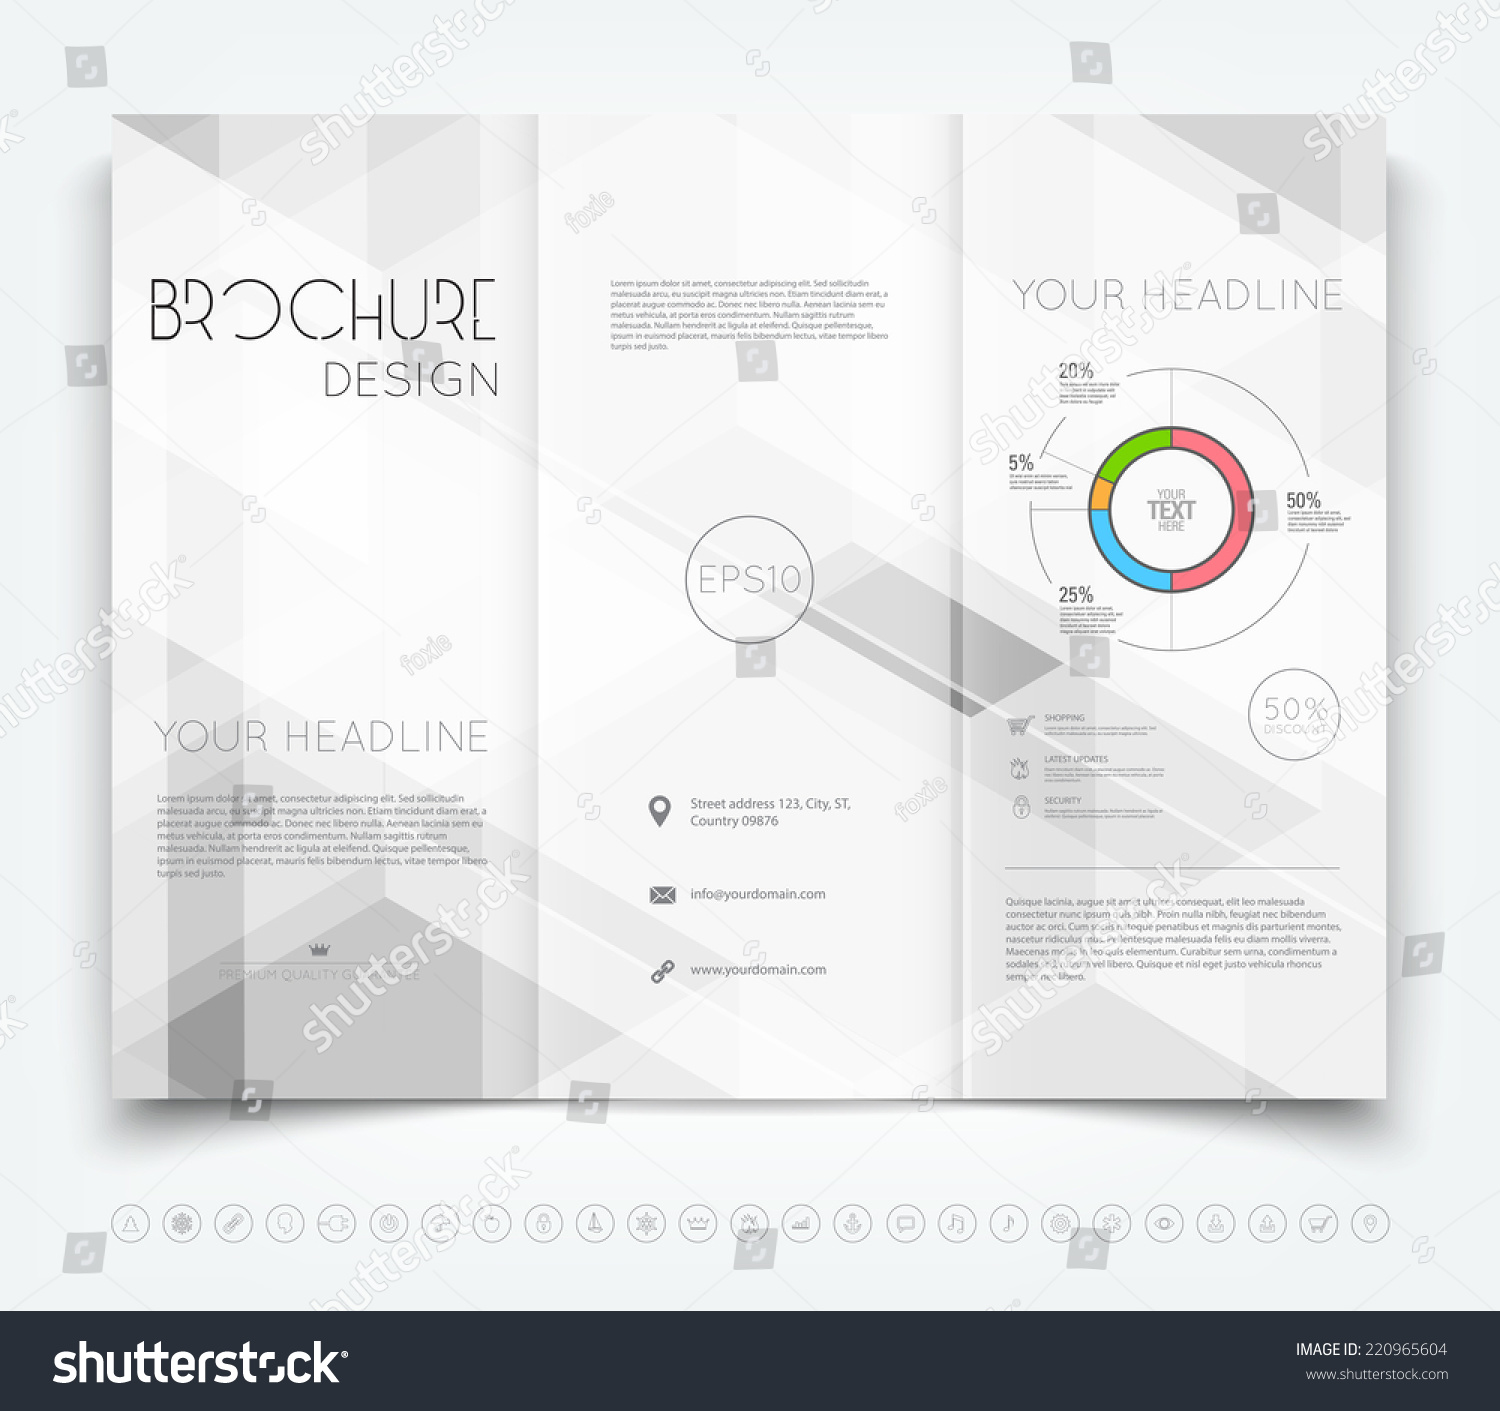 Famous 1 Page Proposal Template Small 1 Week Schedule Template Shaped 110 Block Label Template 1st Birthday Invite Templates Youthful 2 Page Resume Format Doc Orange2 Page Resume Template Word Vector Modern Trifold Brochure Design Template Stock Vector ..